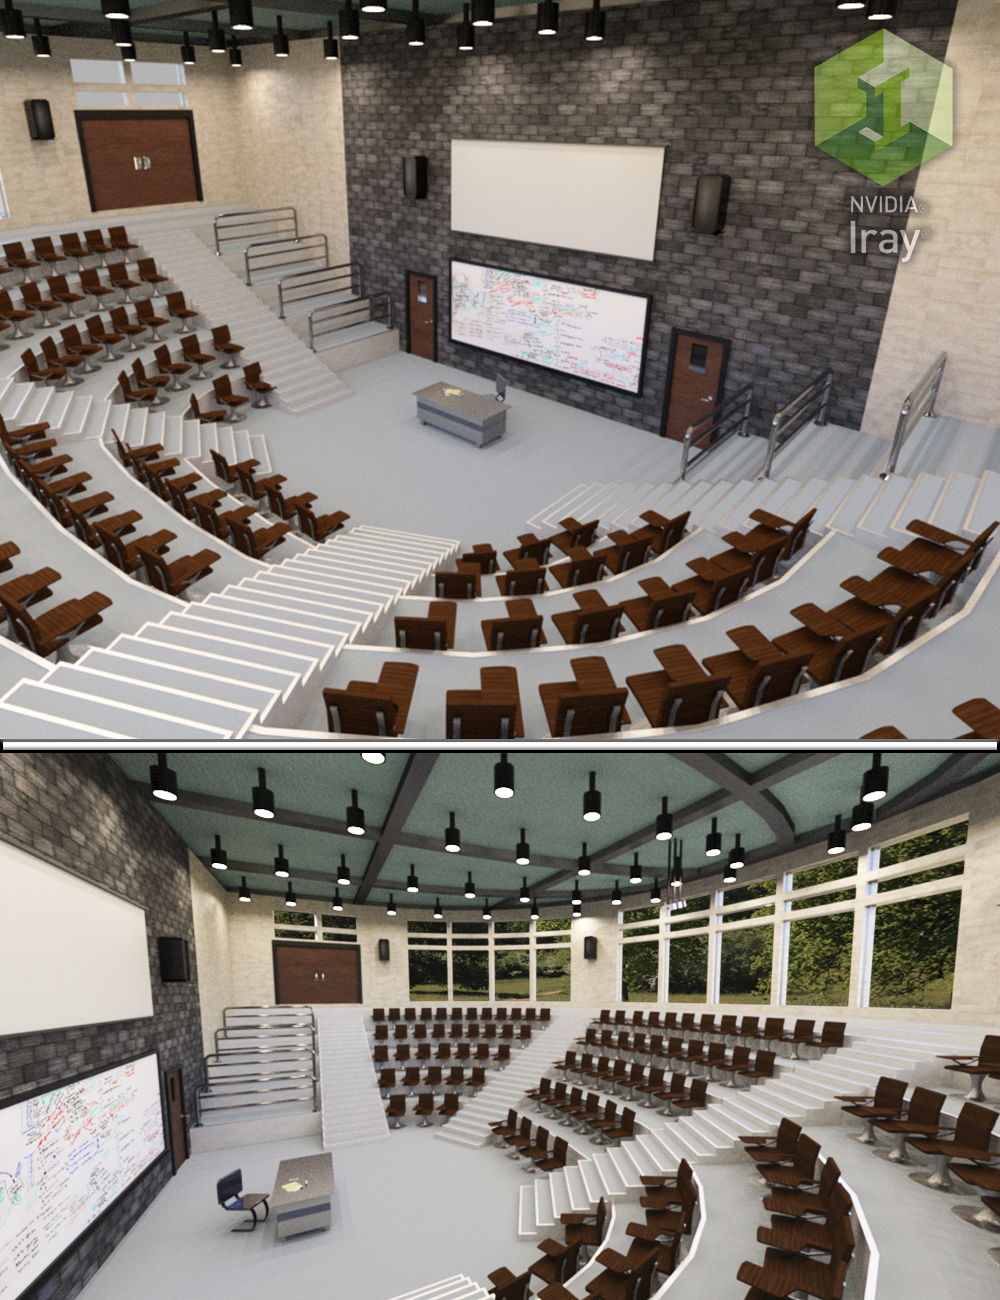 Lecture Hall with Props by: Tesla3dCorp, 3D Models by Daz 3D